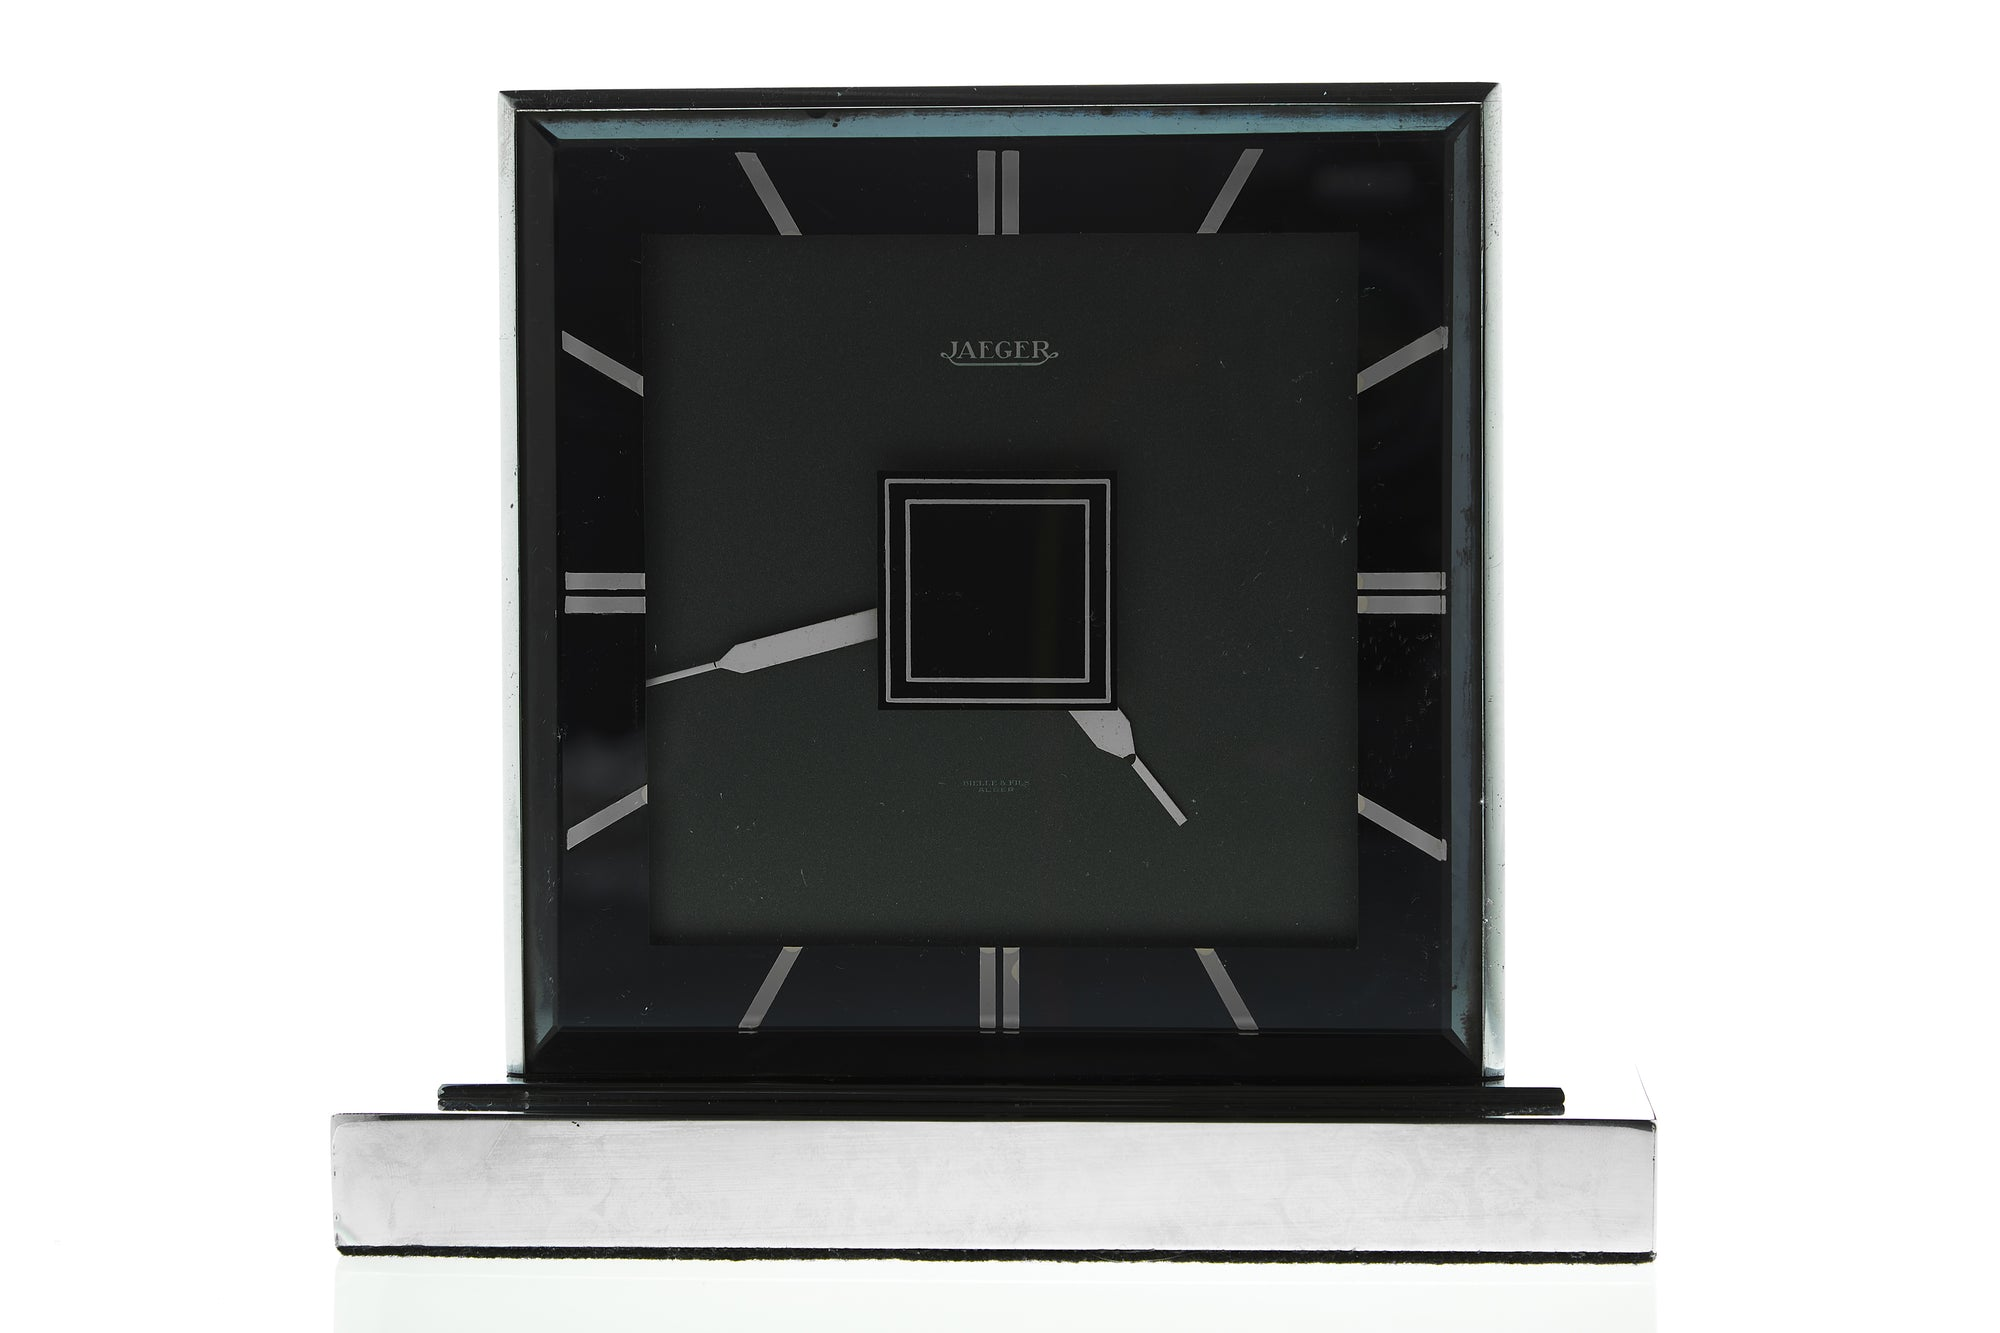 Hermes Partners Clock, by Paul Dupre-Lafon